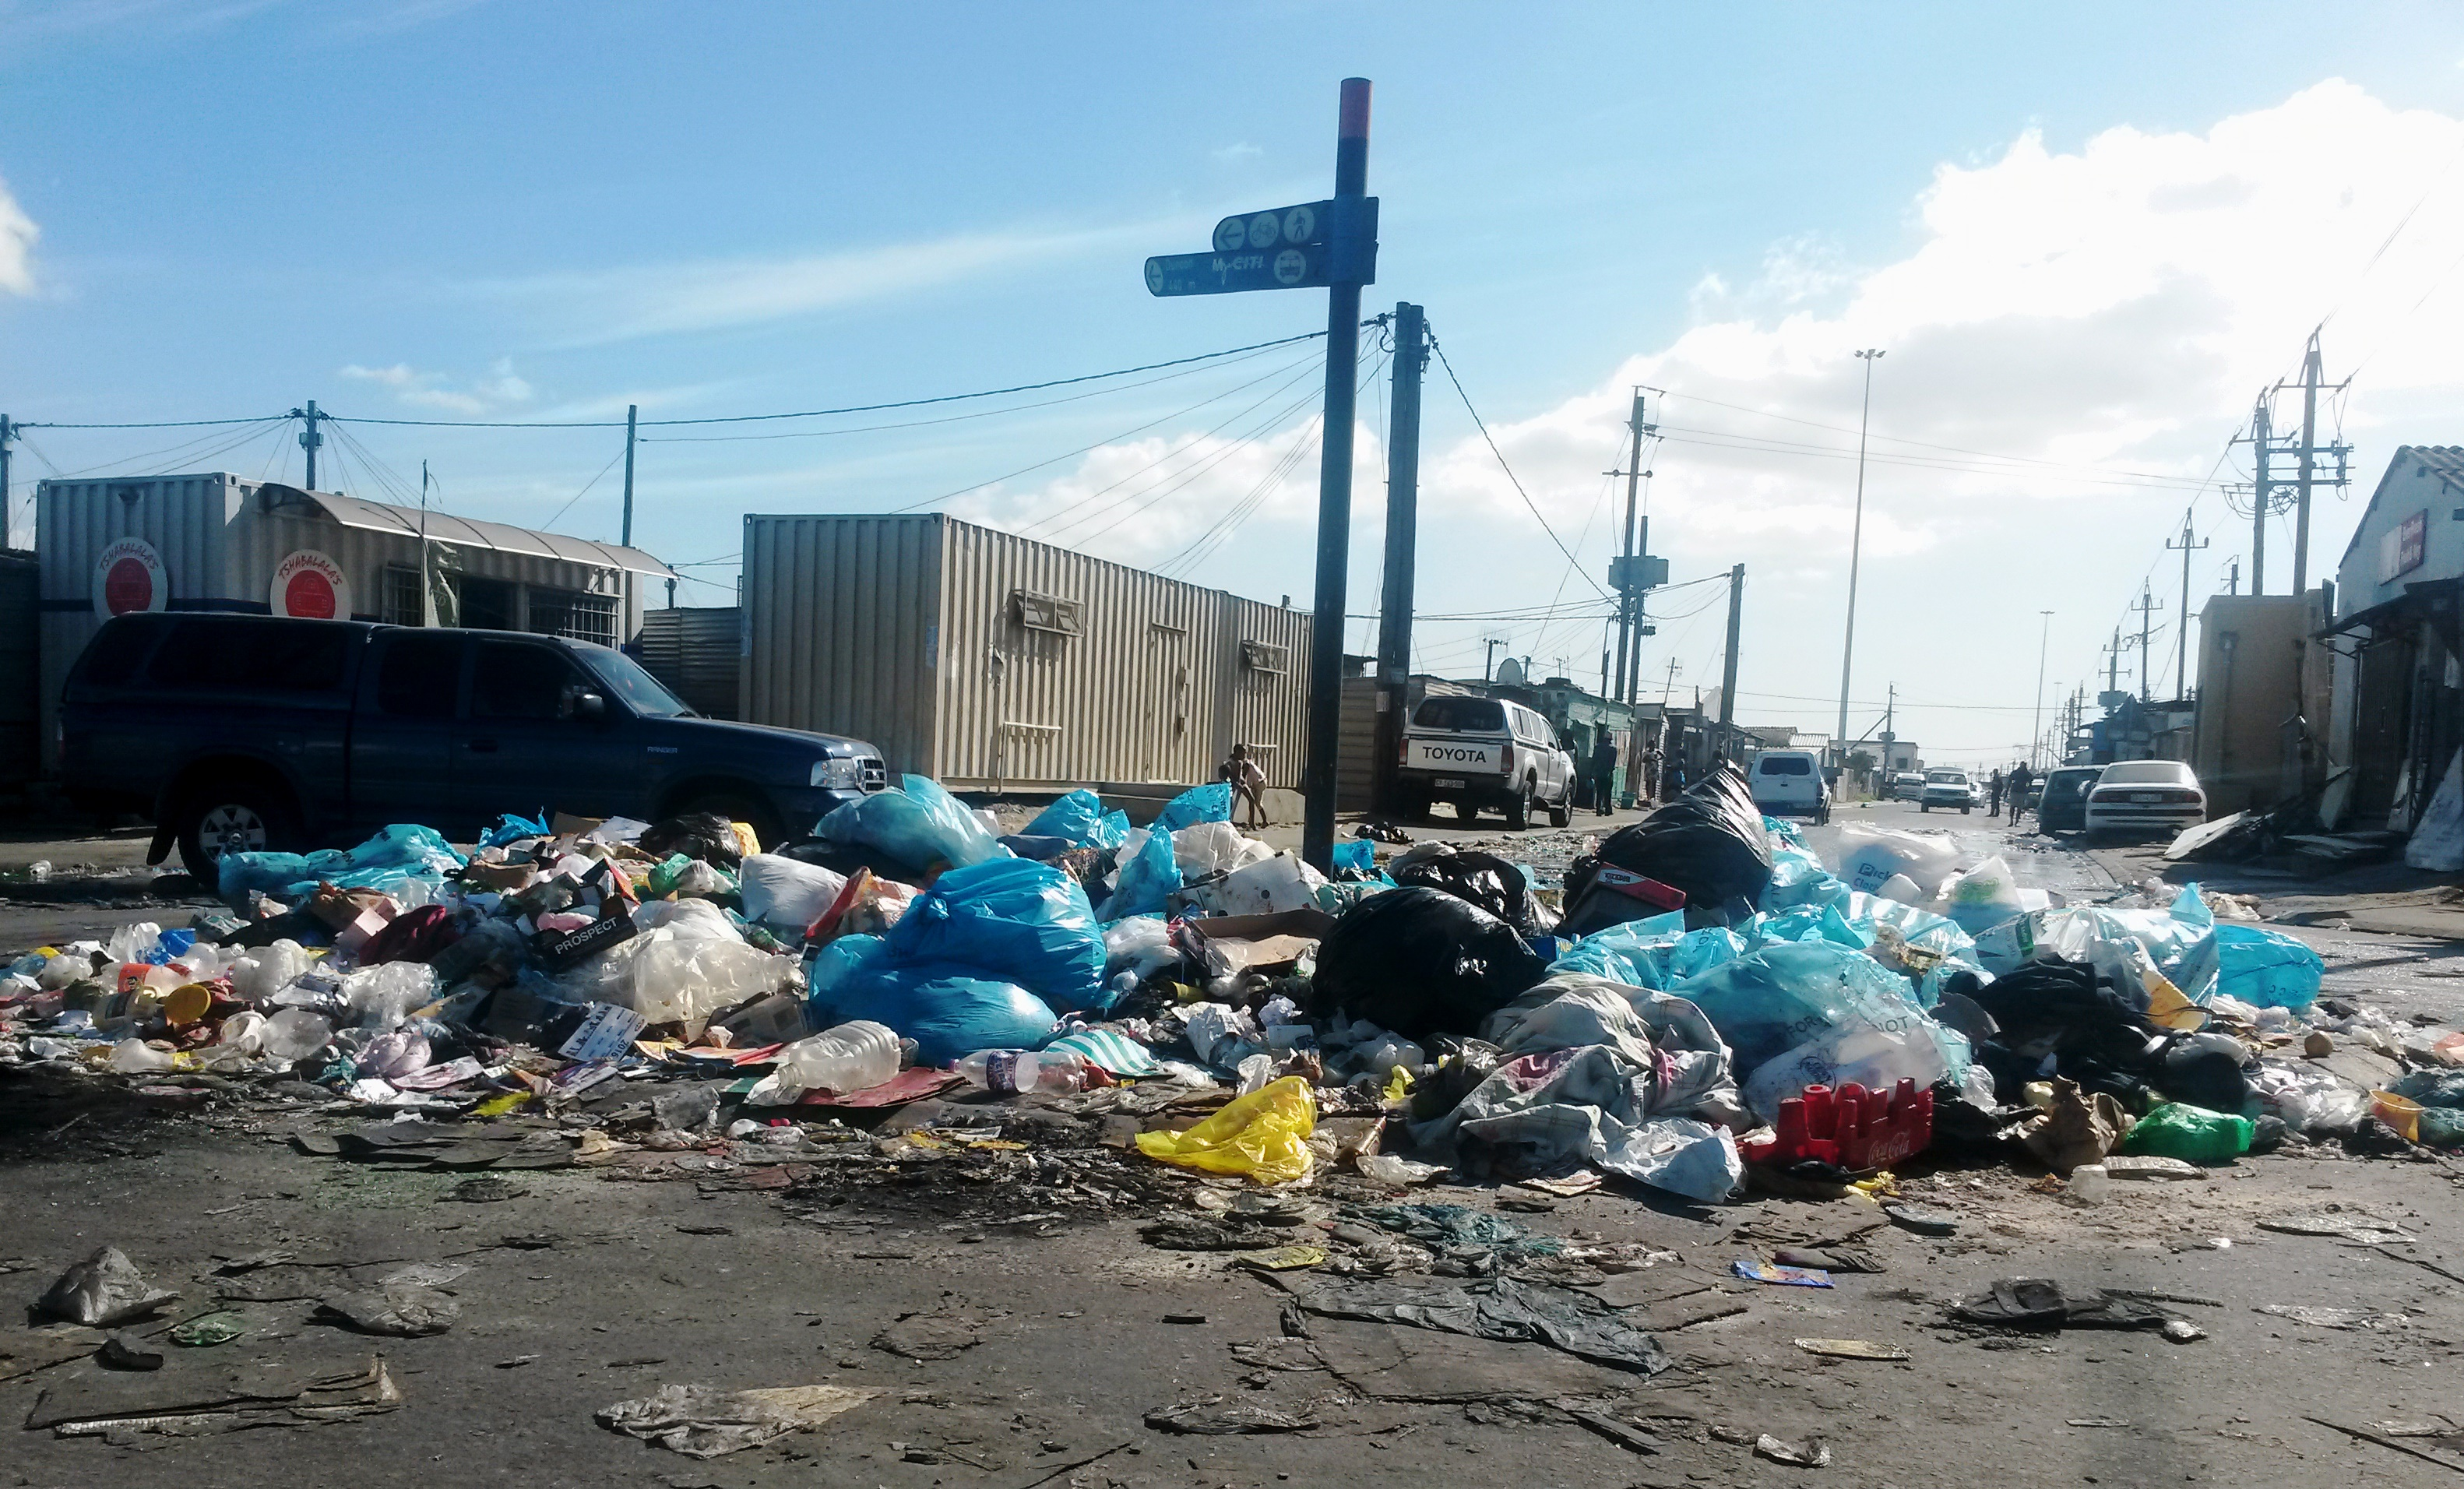 Photo of piles of rubbish in a road